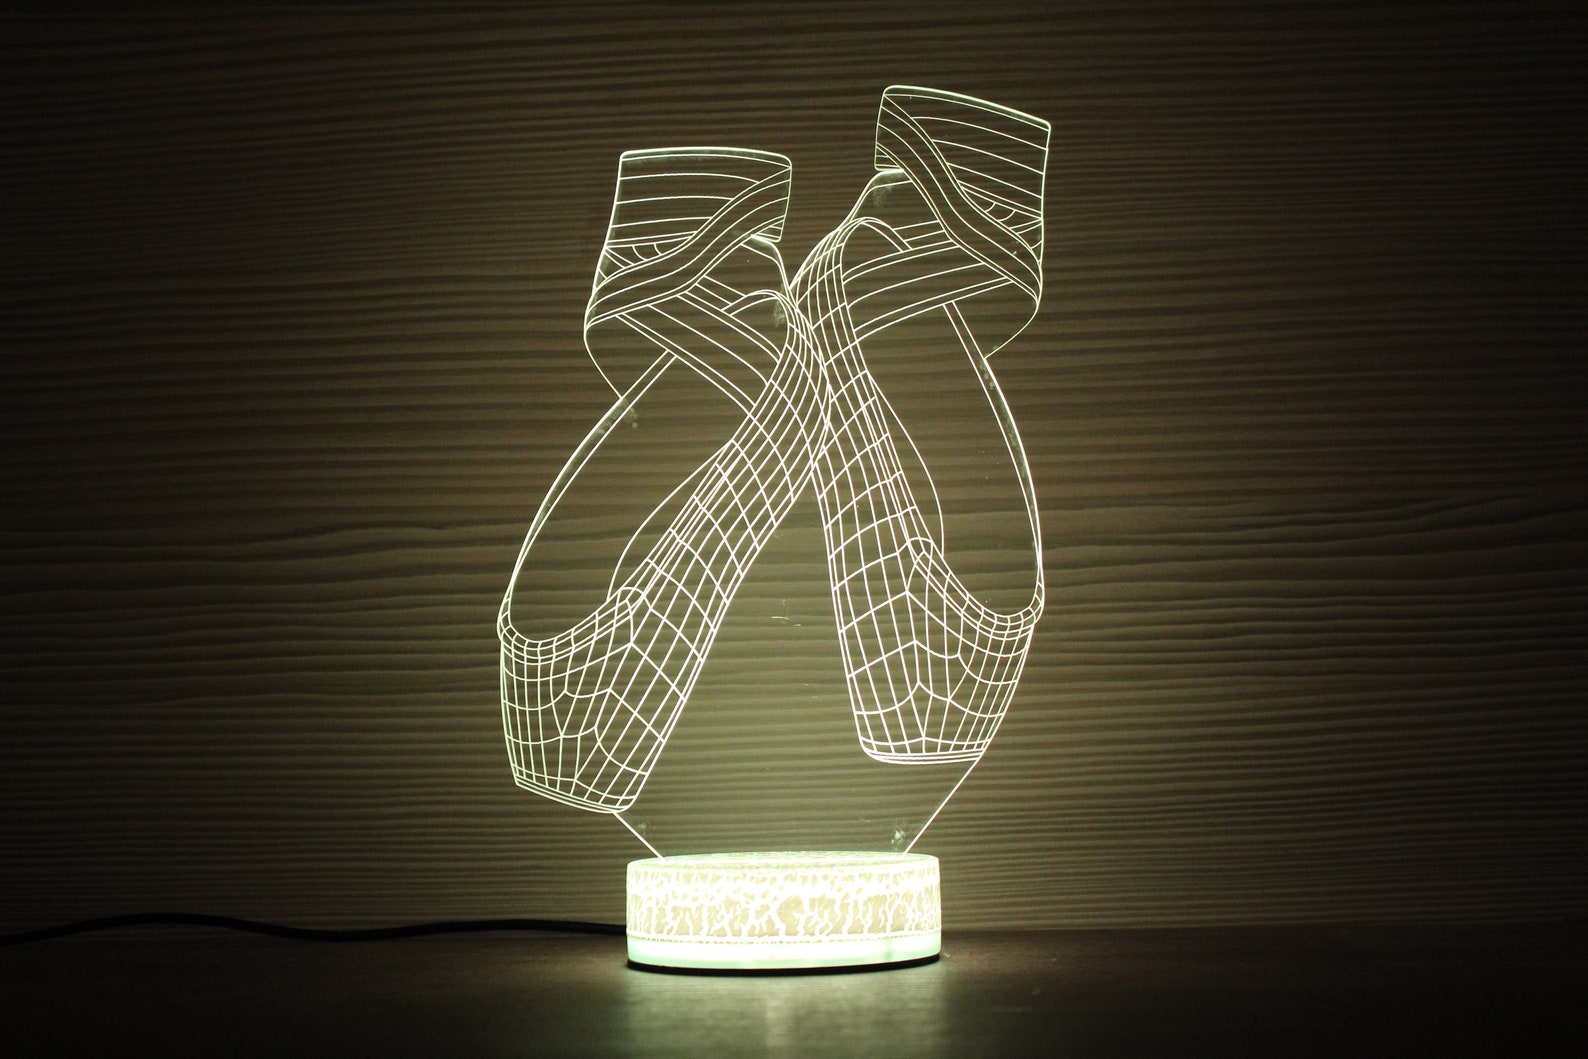 ballet shoes 3d night lamp night light children light 3d illusion led lamp ballerina birthday party gift idea kids birthday ball